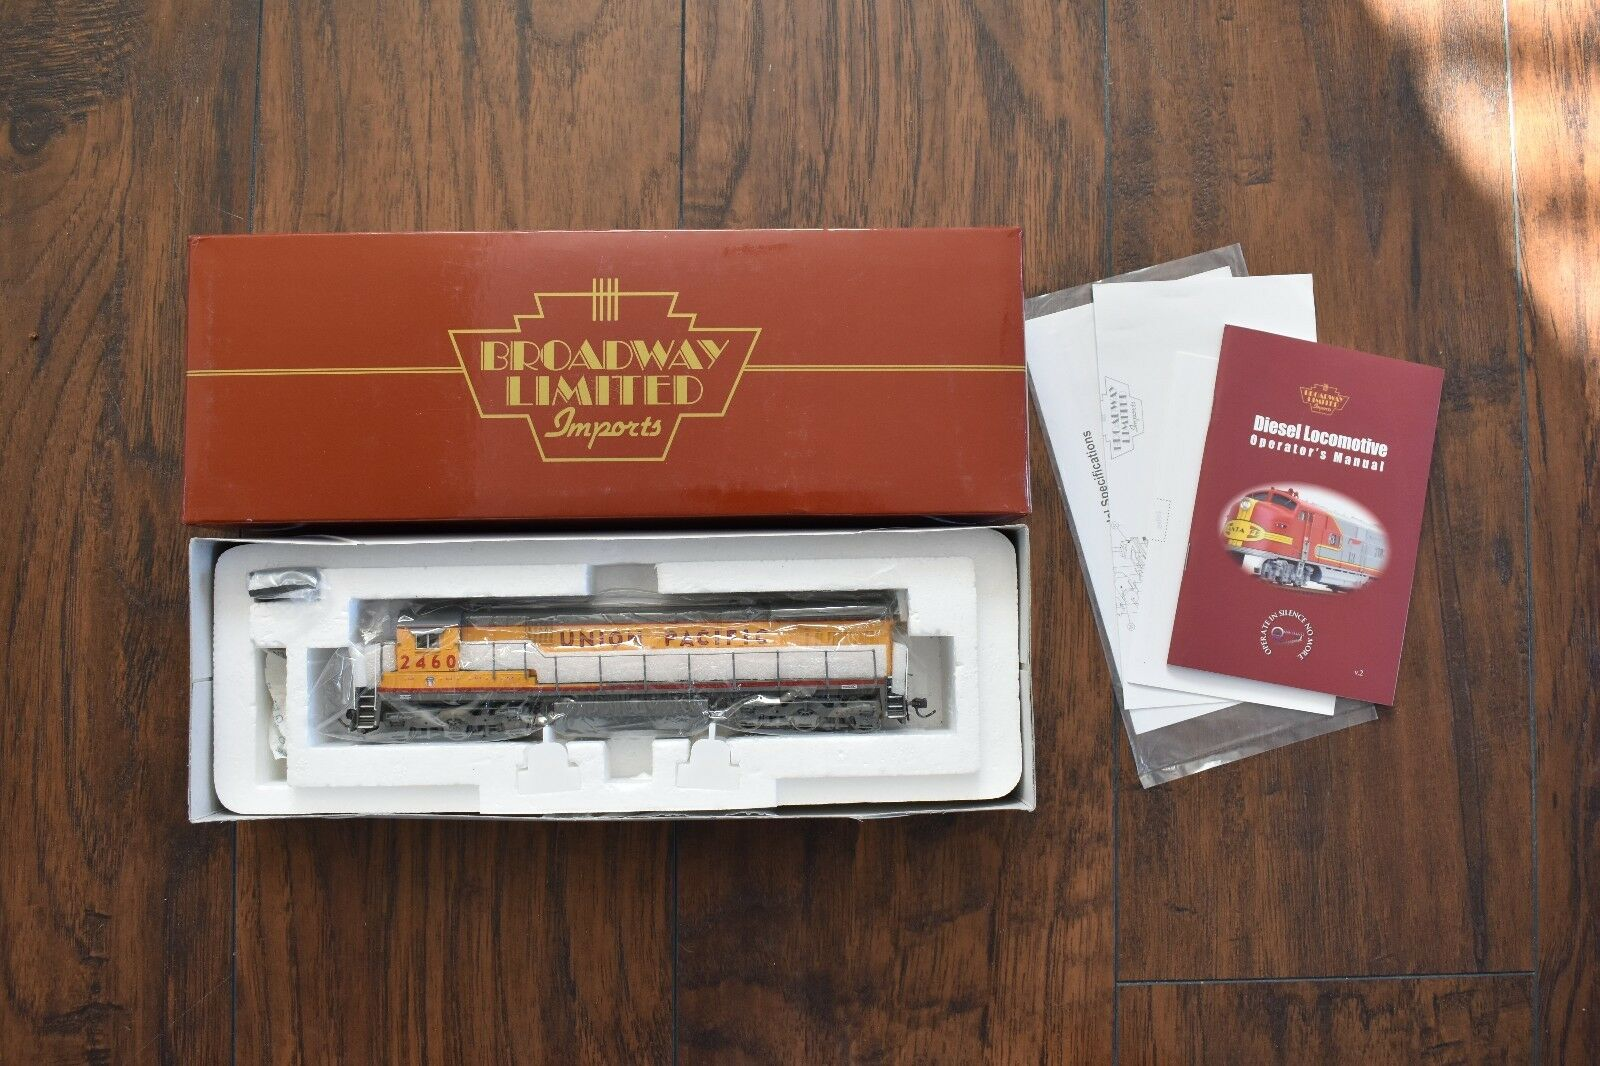 Broadway Limited Union Pacific GE C30-7 2 Window Locomotive HO NIB 488